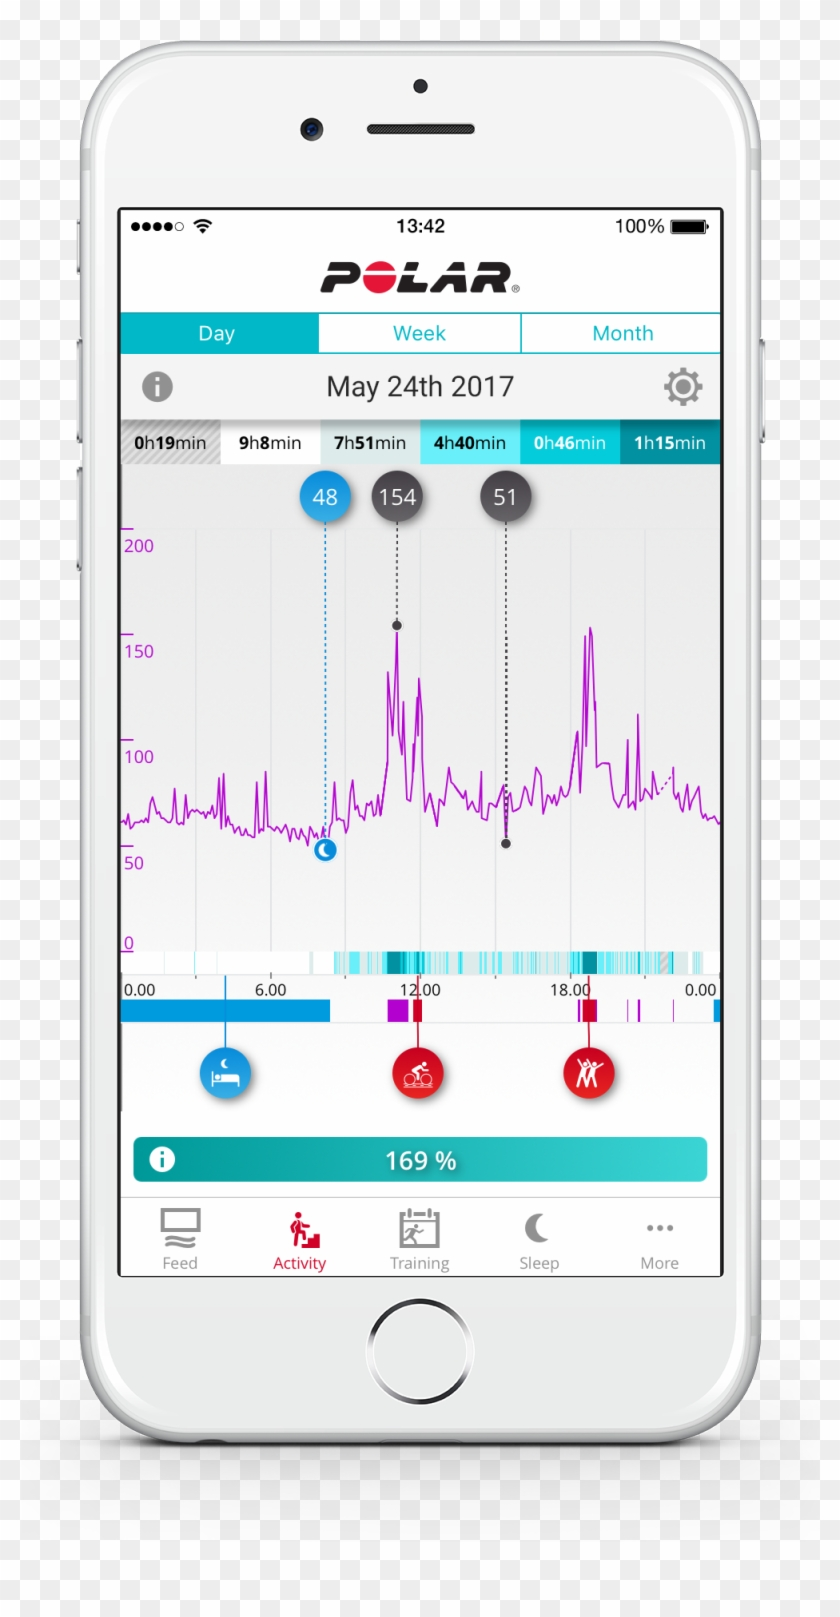 Continuous Heart Rate In The Polar Flow App - Polar Clipart #1854622